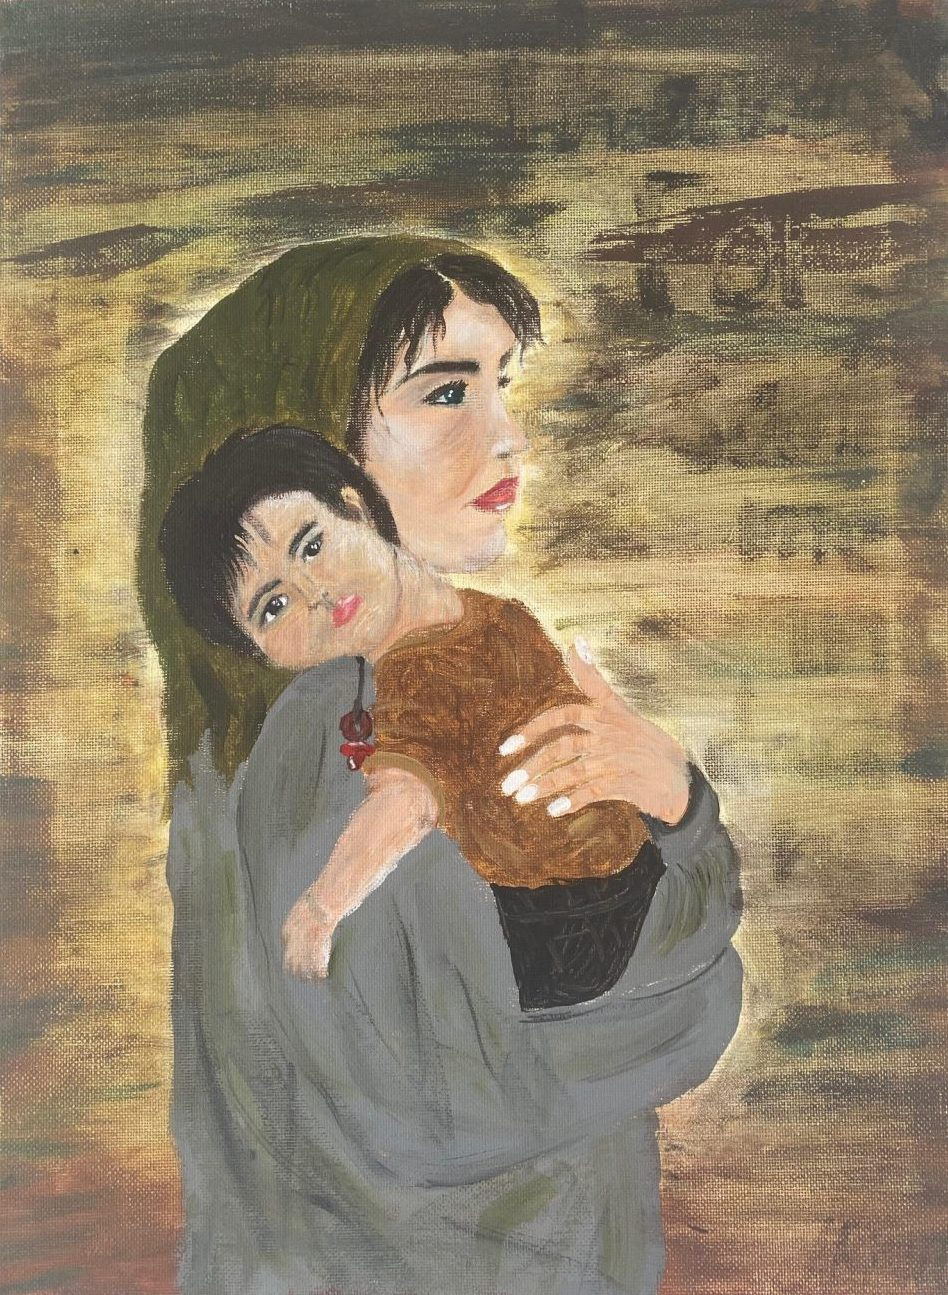 a painting of a woman with pale skin and dark hair looks to the side. She is wearing a head scarf and is holding her toddler who is looking at the viewer